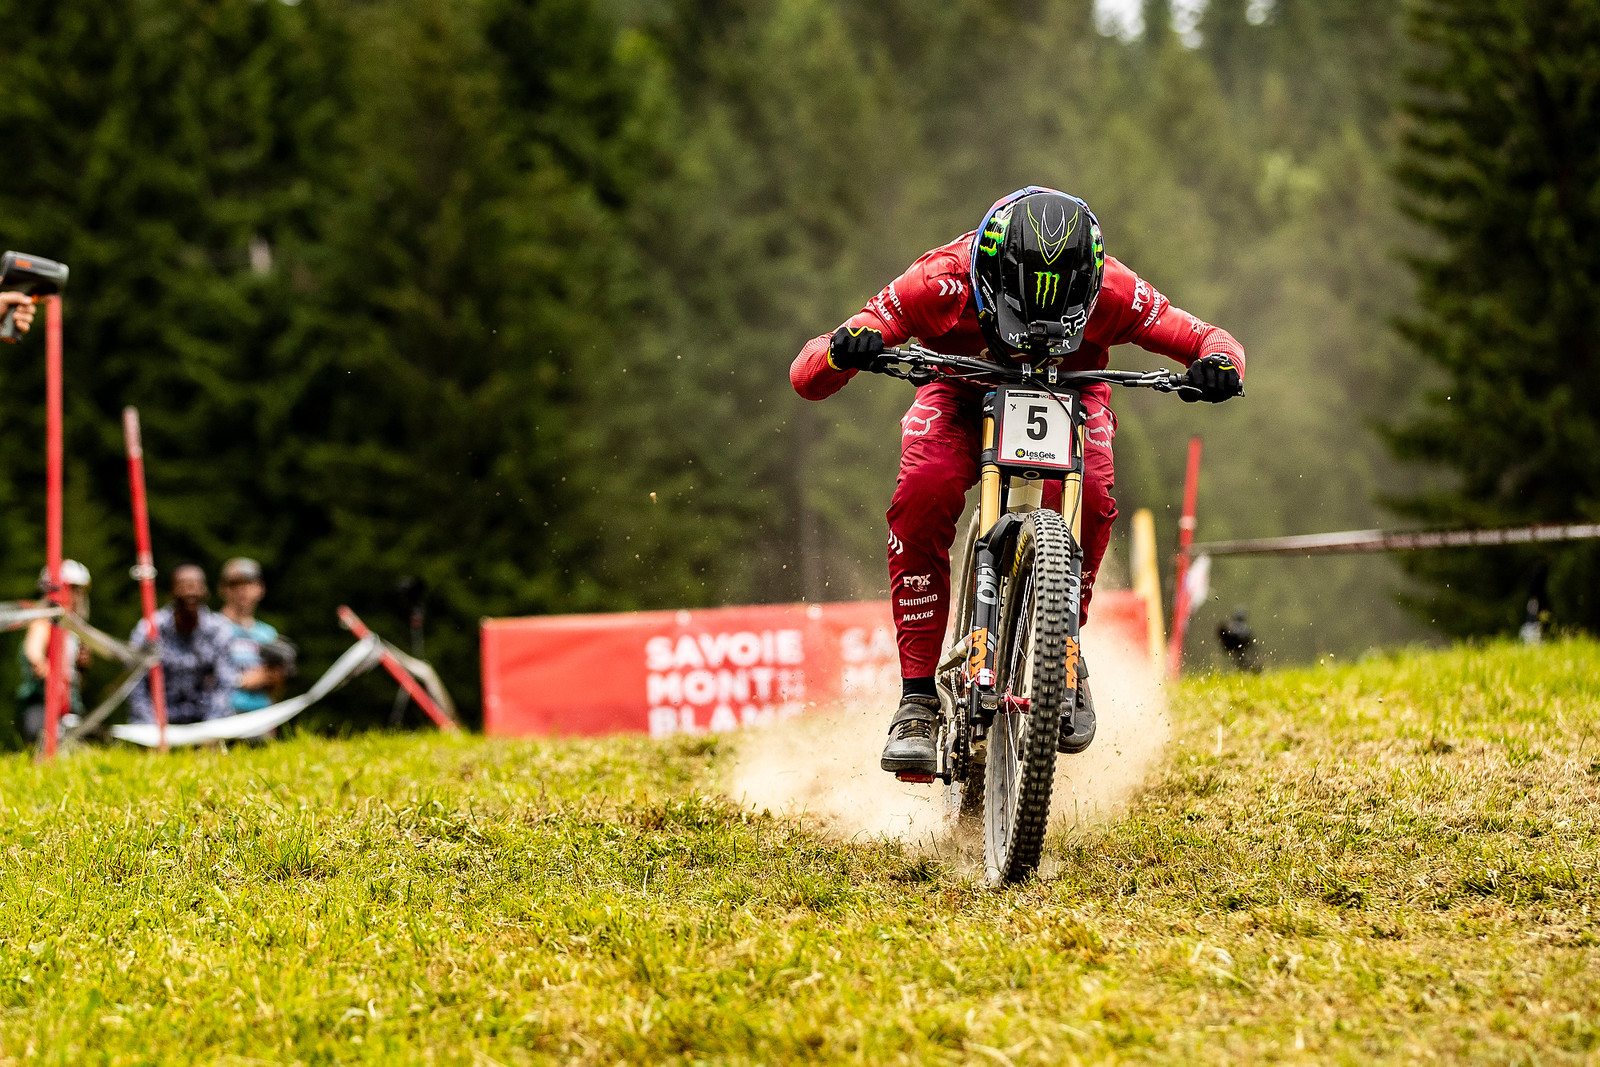 Loris Vergier 2019 World Cup Downhill Photos - Loris Vergier 2019 World Cup Downhill Photos - Mountain Biking Pictures - Vital MTB